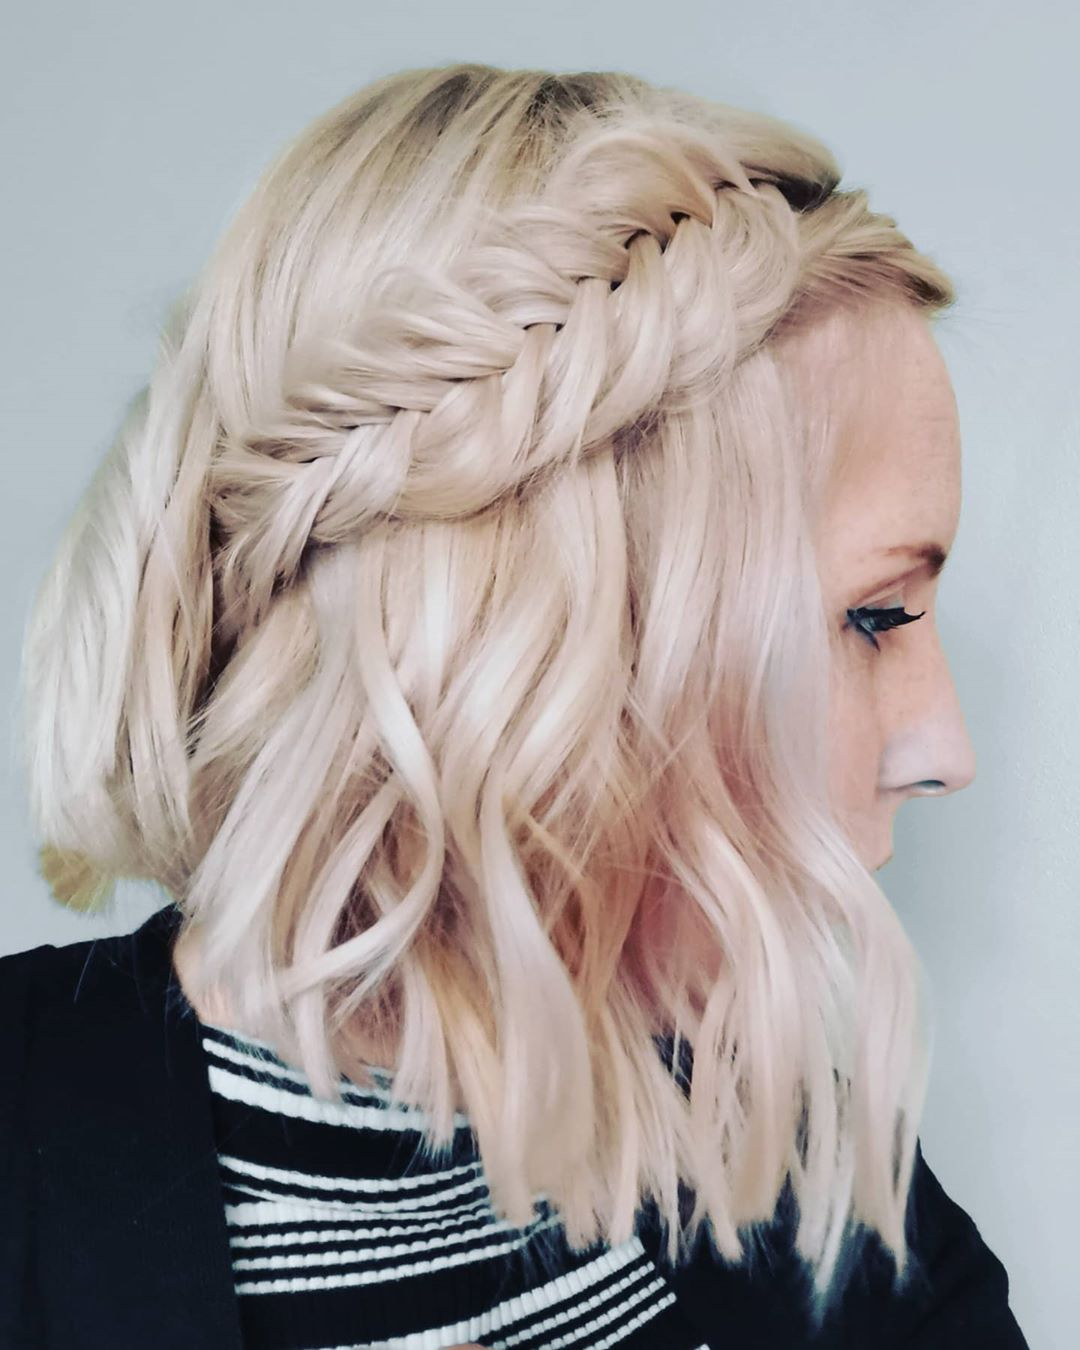 Beautiful Instagram Hairstyles To Inspire Your Looks In 2020 Instagram Hairstyles Hair Styles Hair Waves